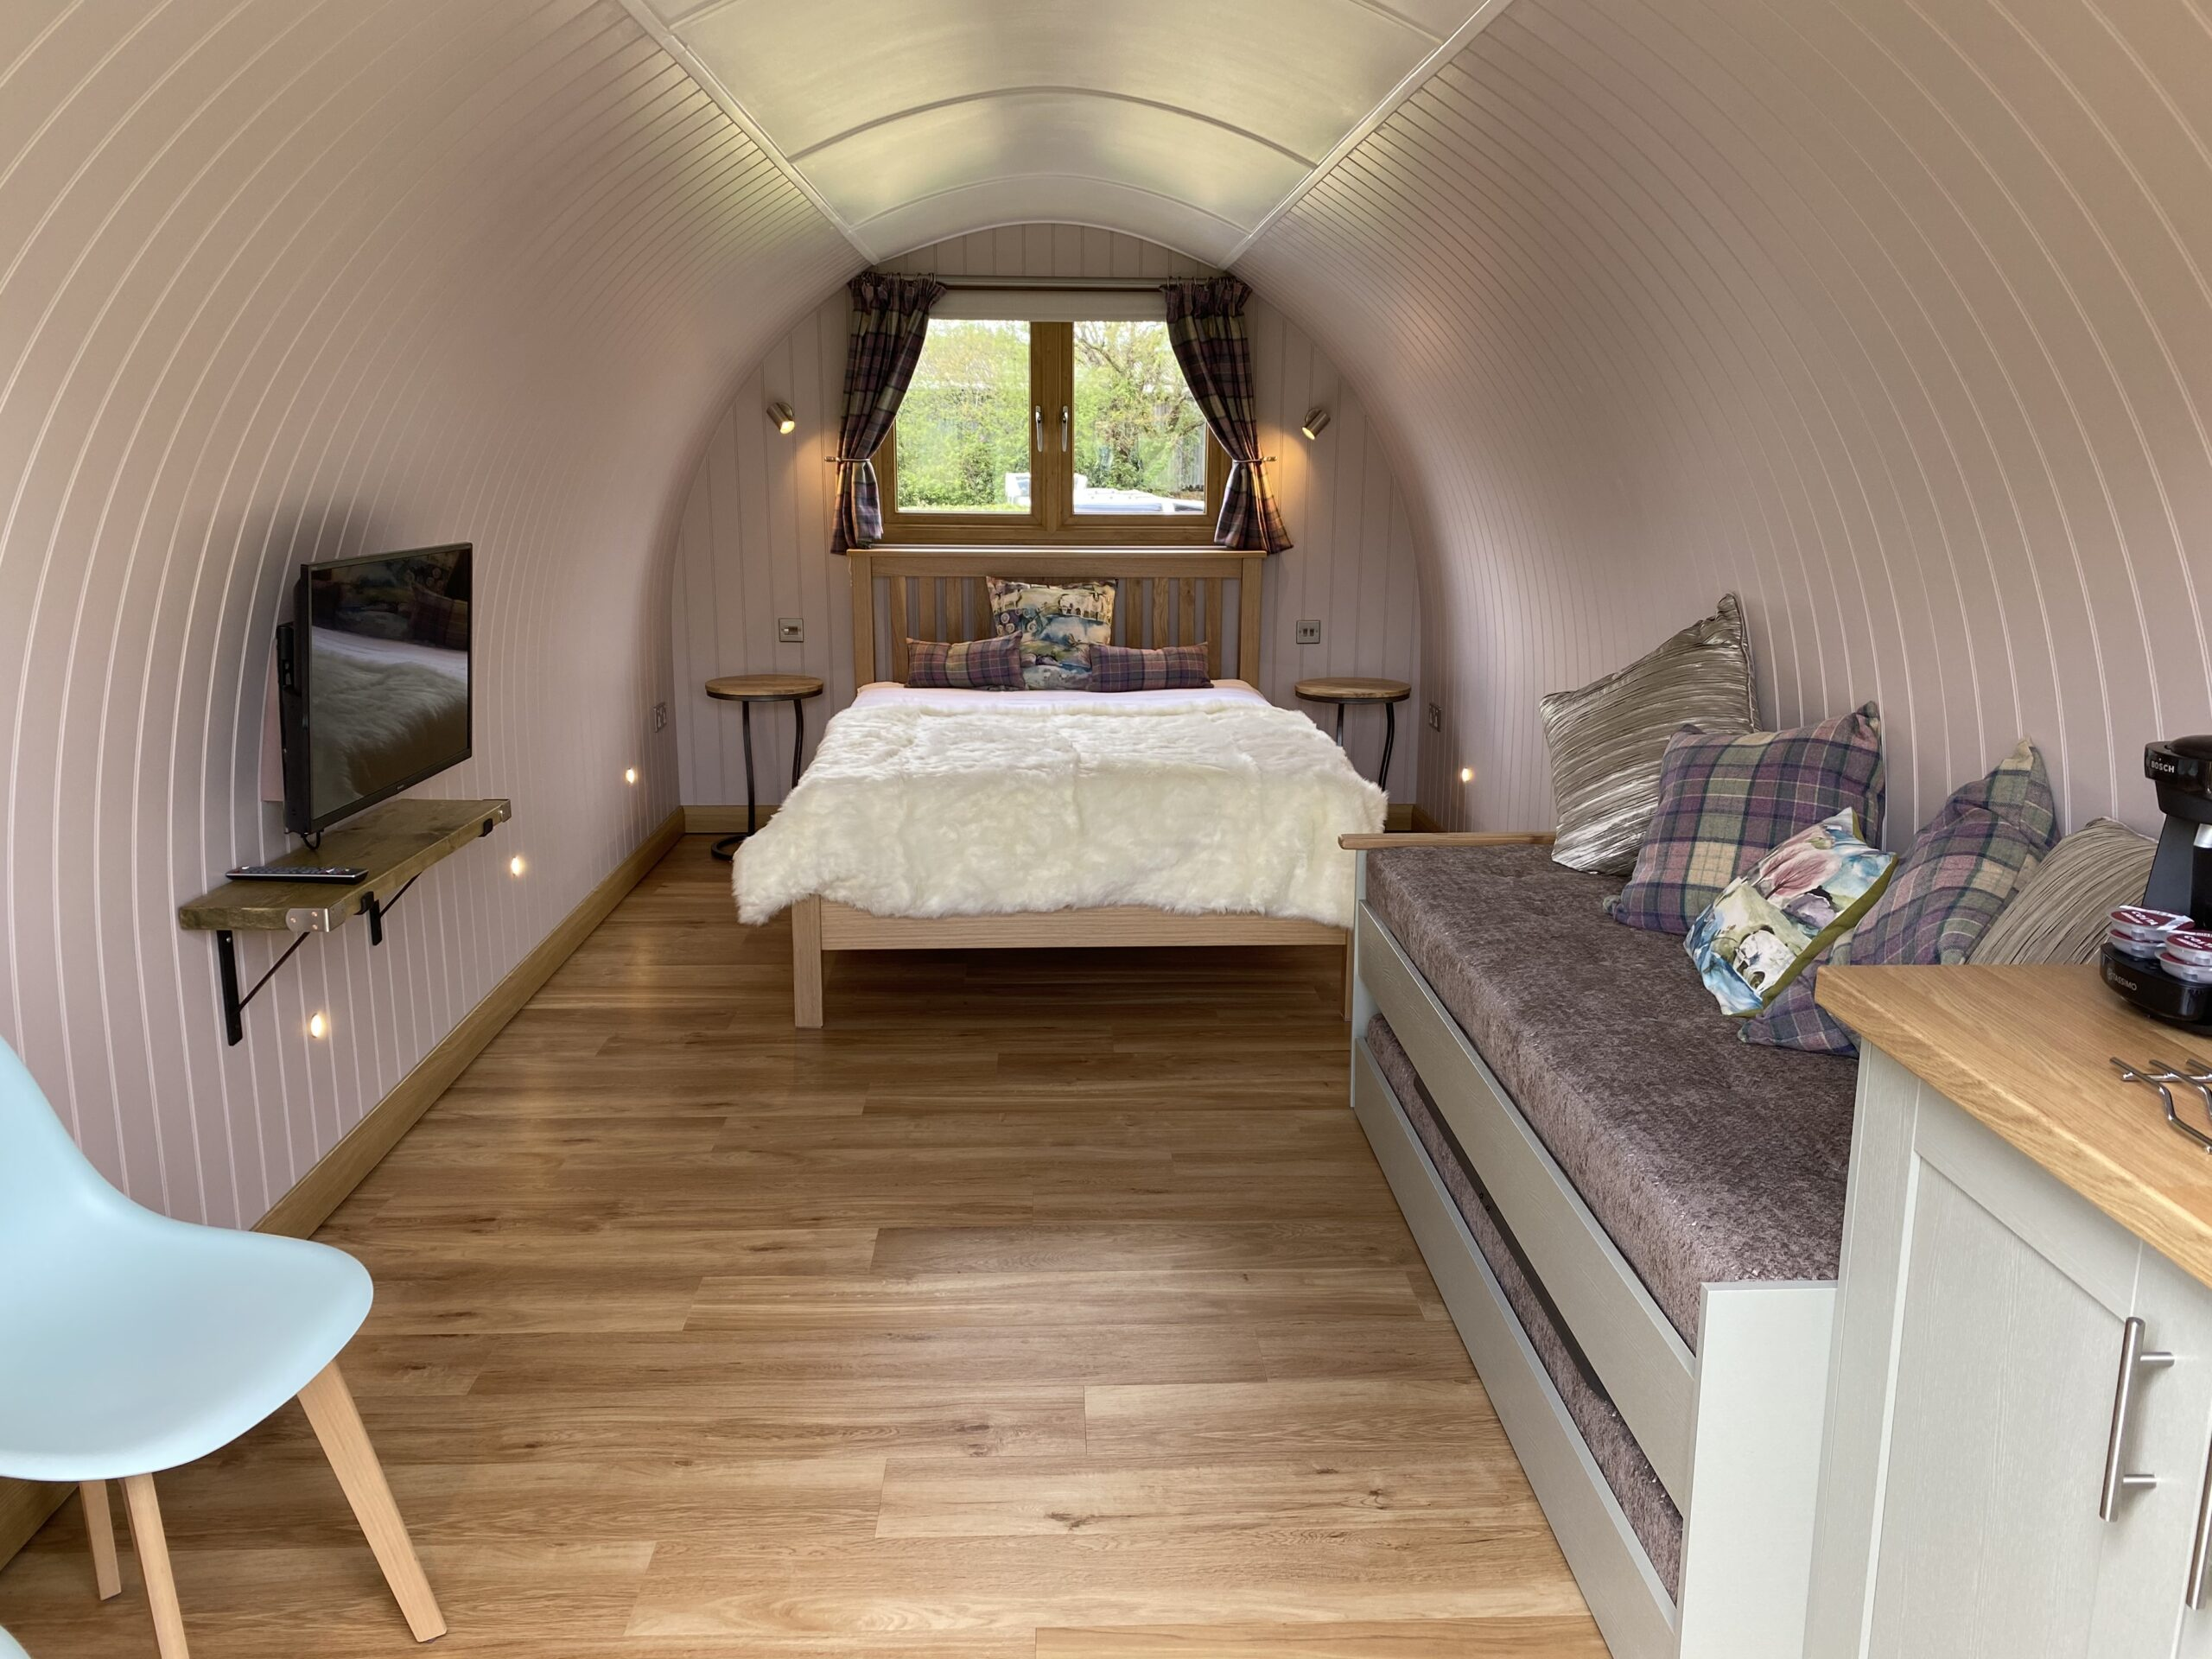 a look inside our wooden glamping pods at south lychett manor